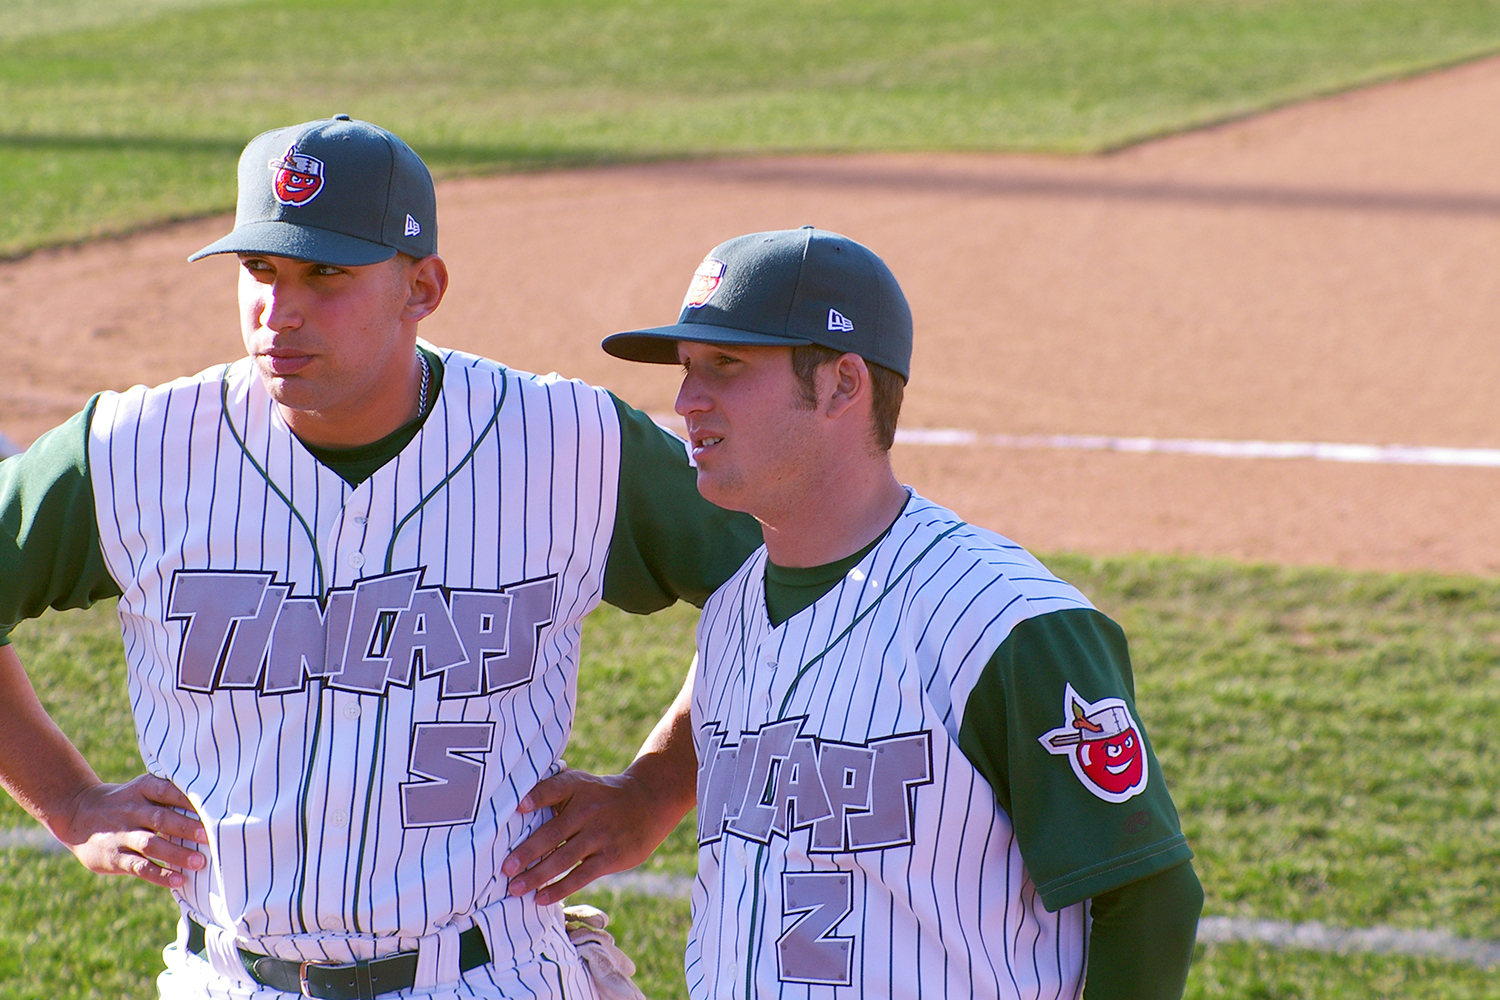 TinCaps Home Uniform 2 players.jpg